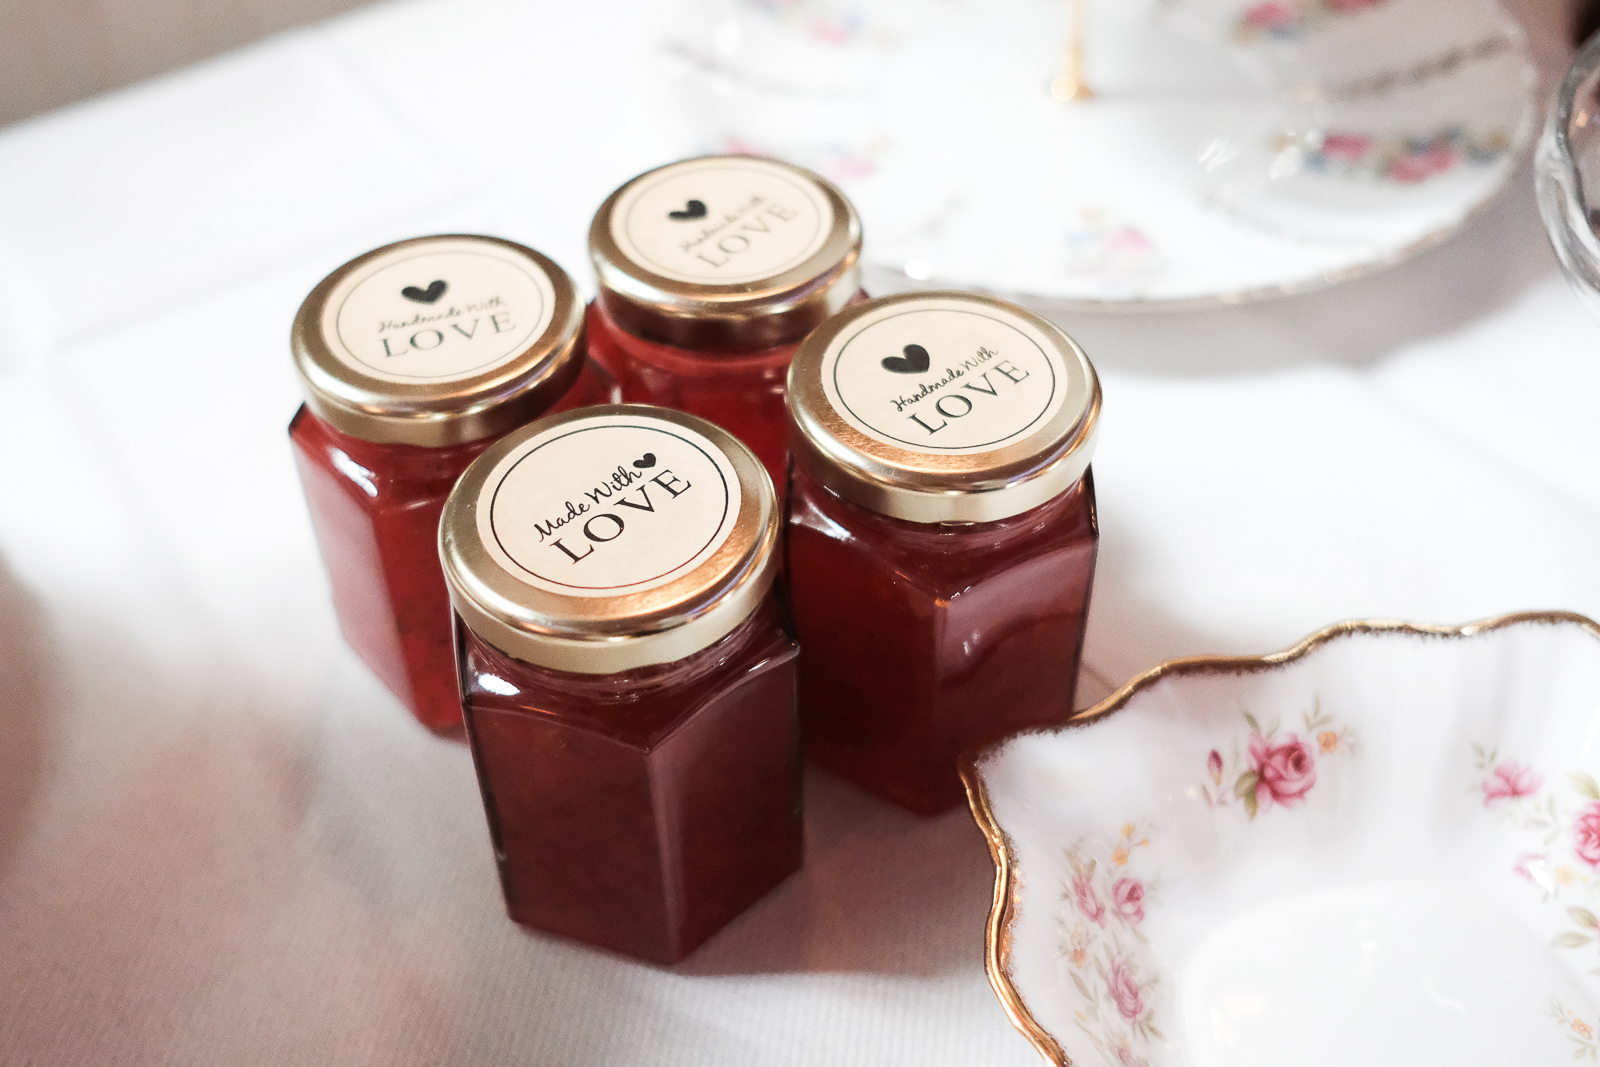 Scrumptious Strawberry jam made by Laura